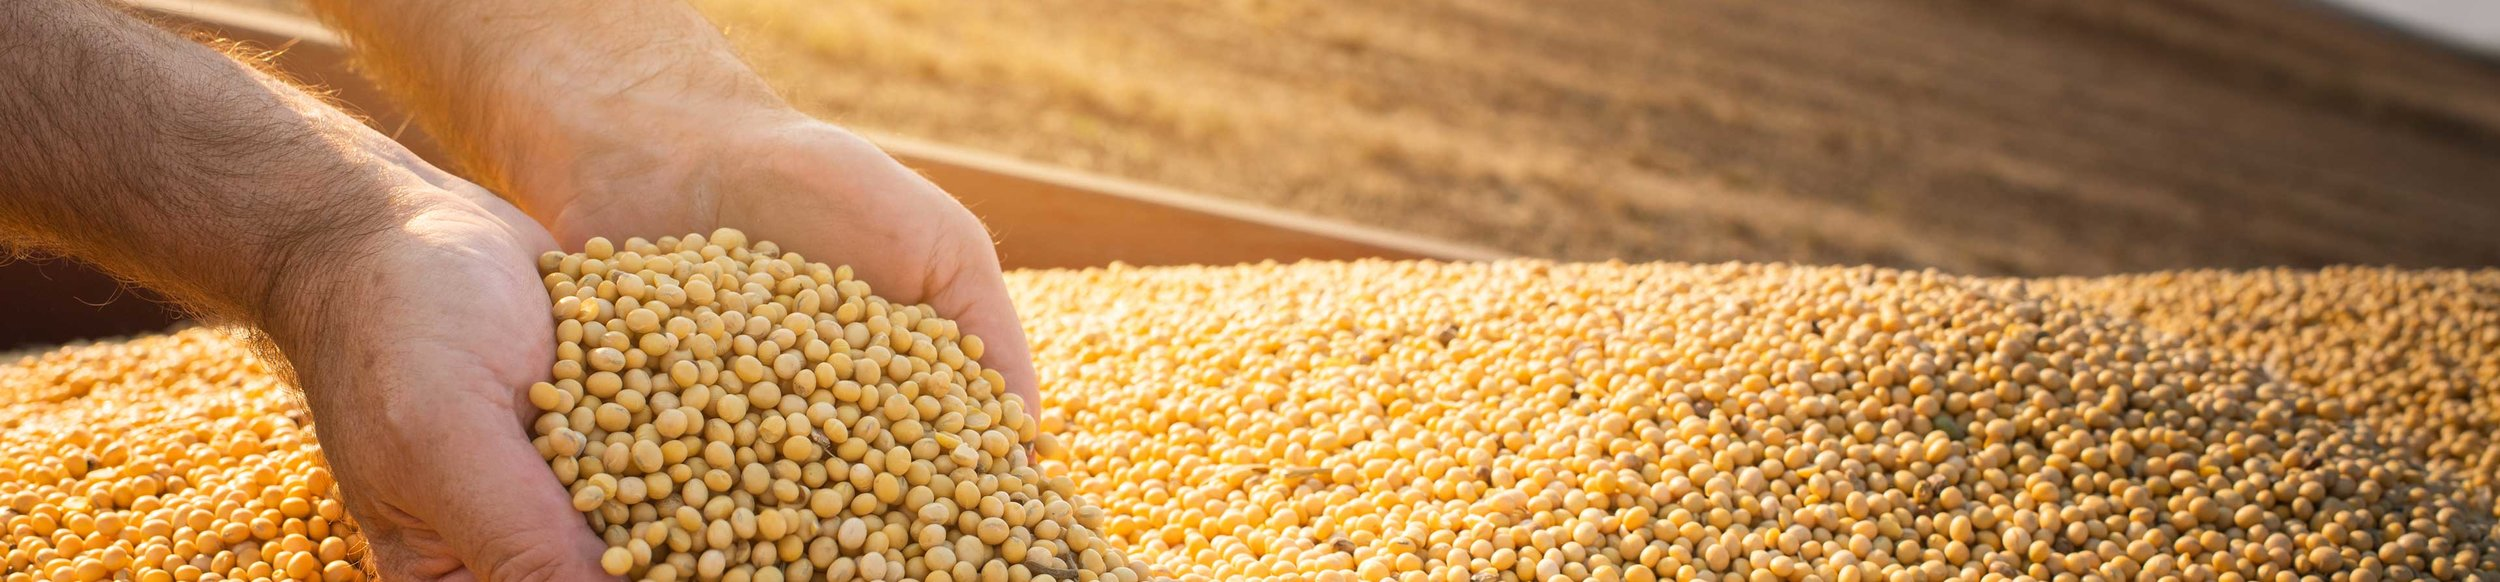 Globally important, the widely grown soybeans are rich in oil and protein.